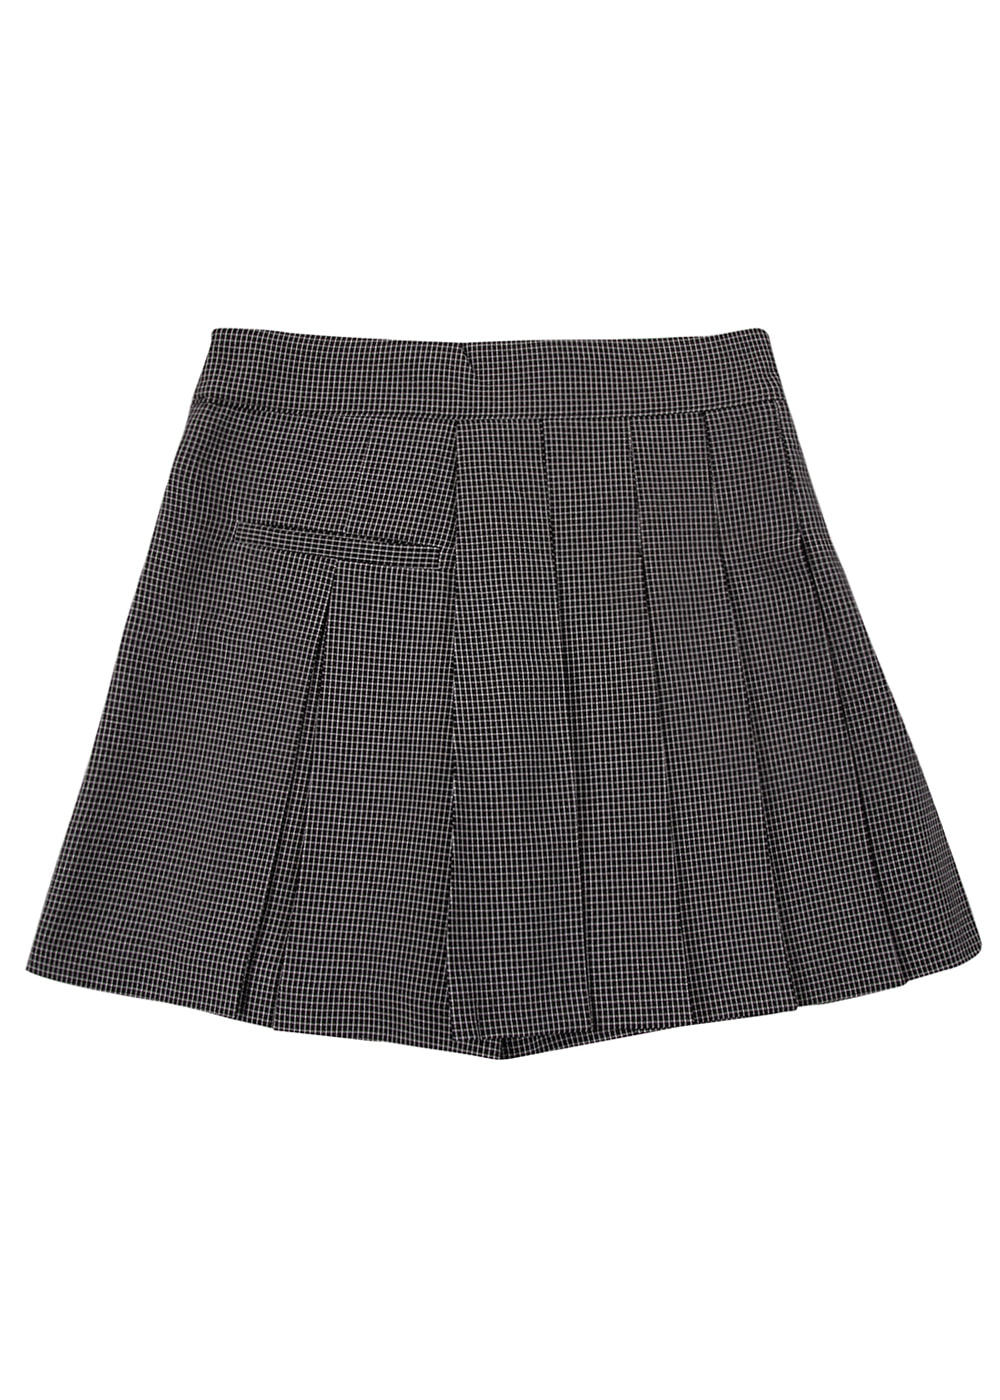 Windowpane Check Pleats Pants Skirt BK